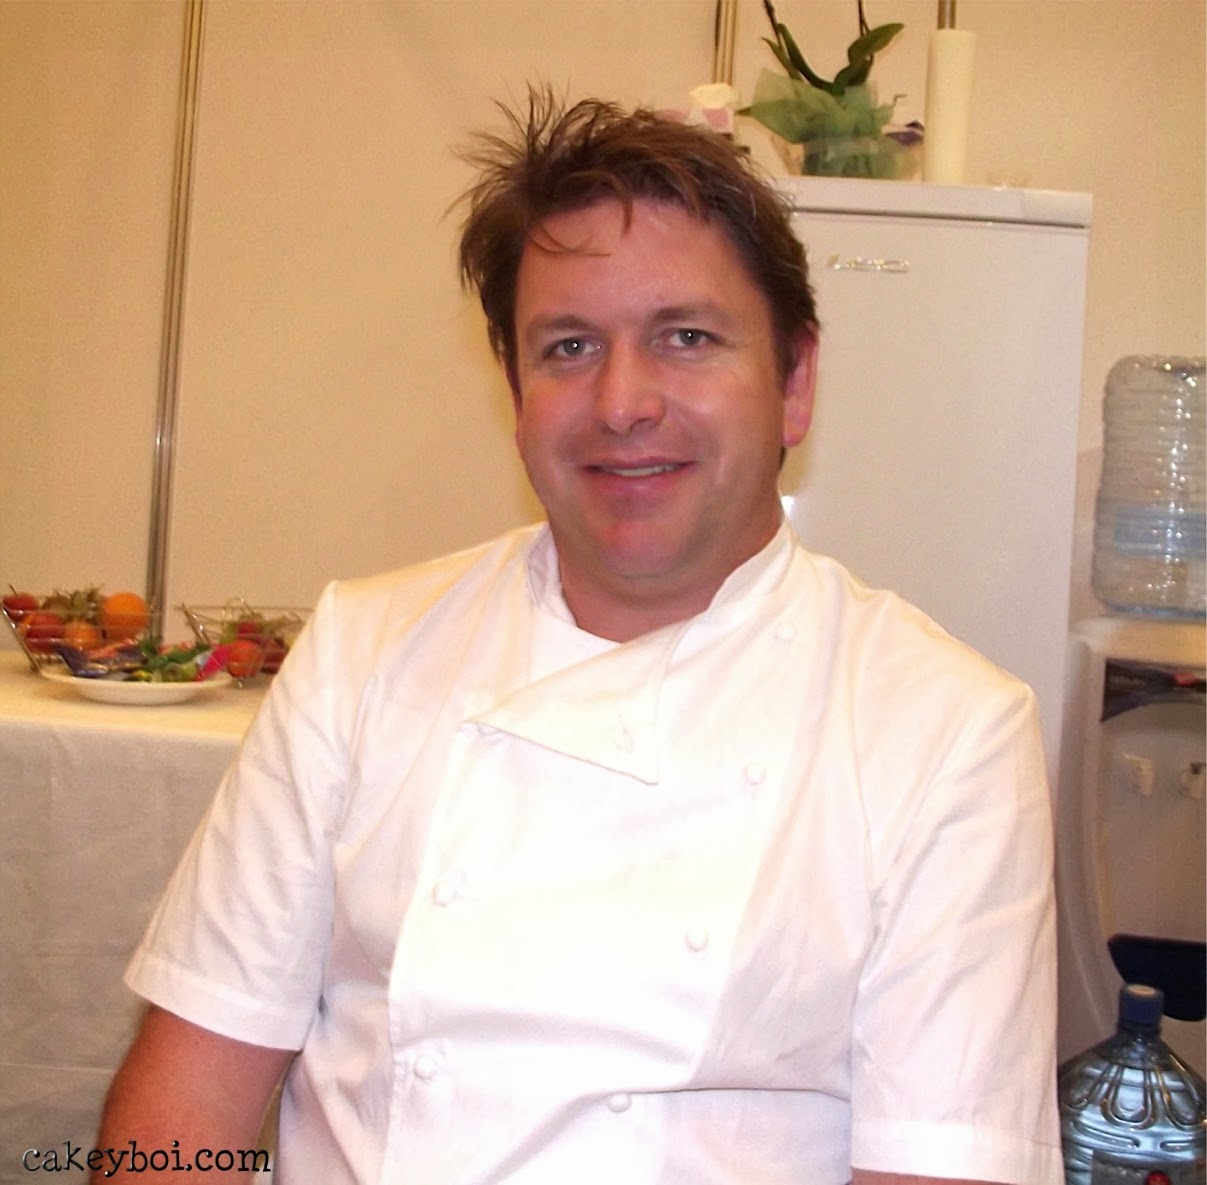 When Cakeyboi met James Martin